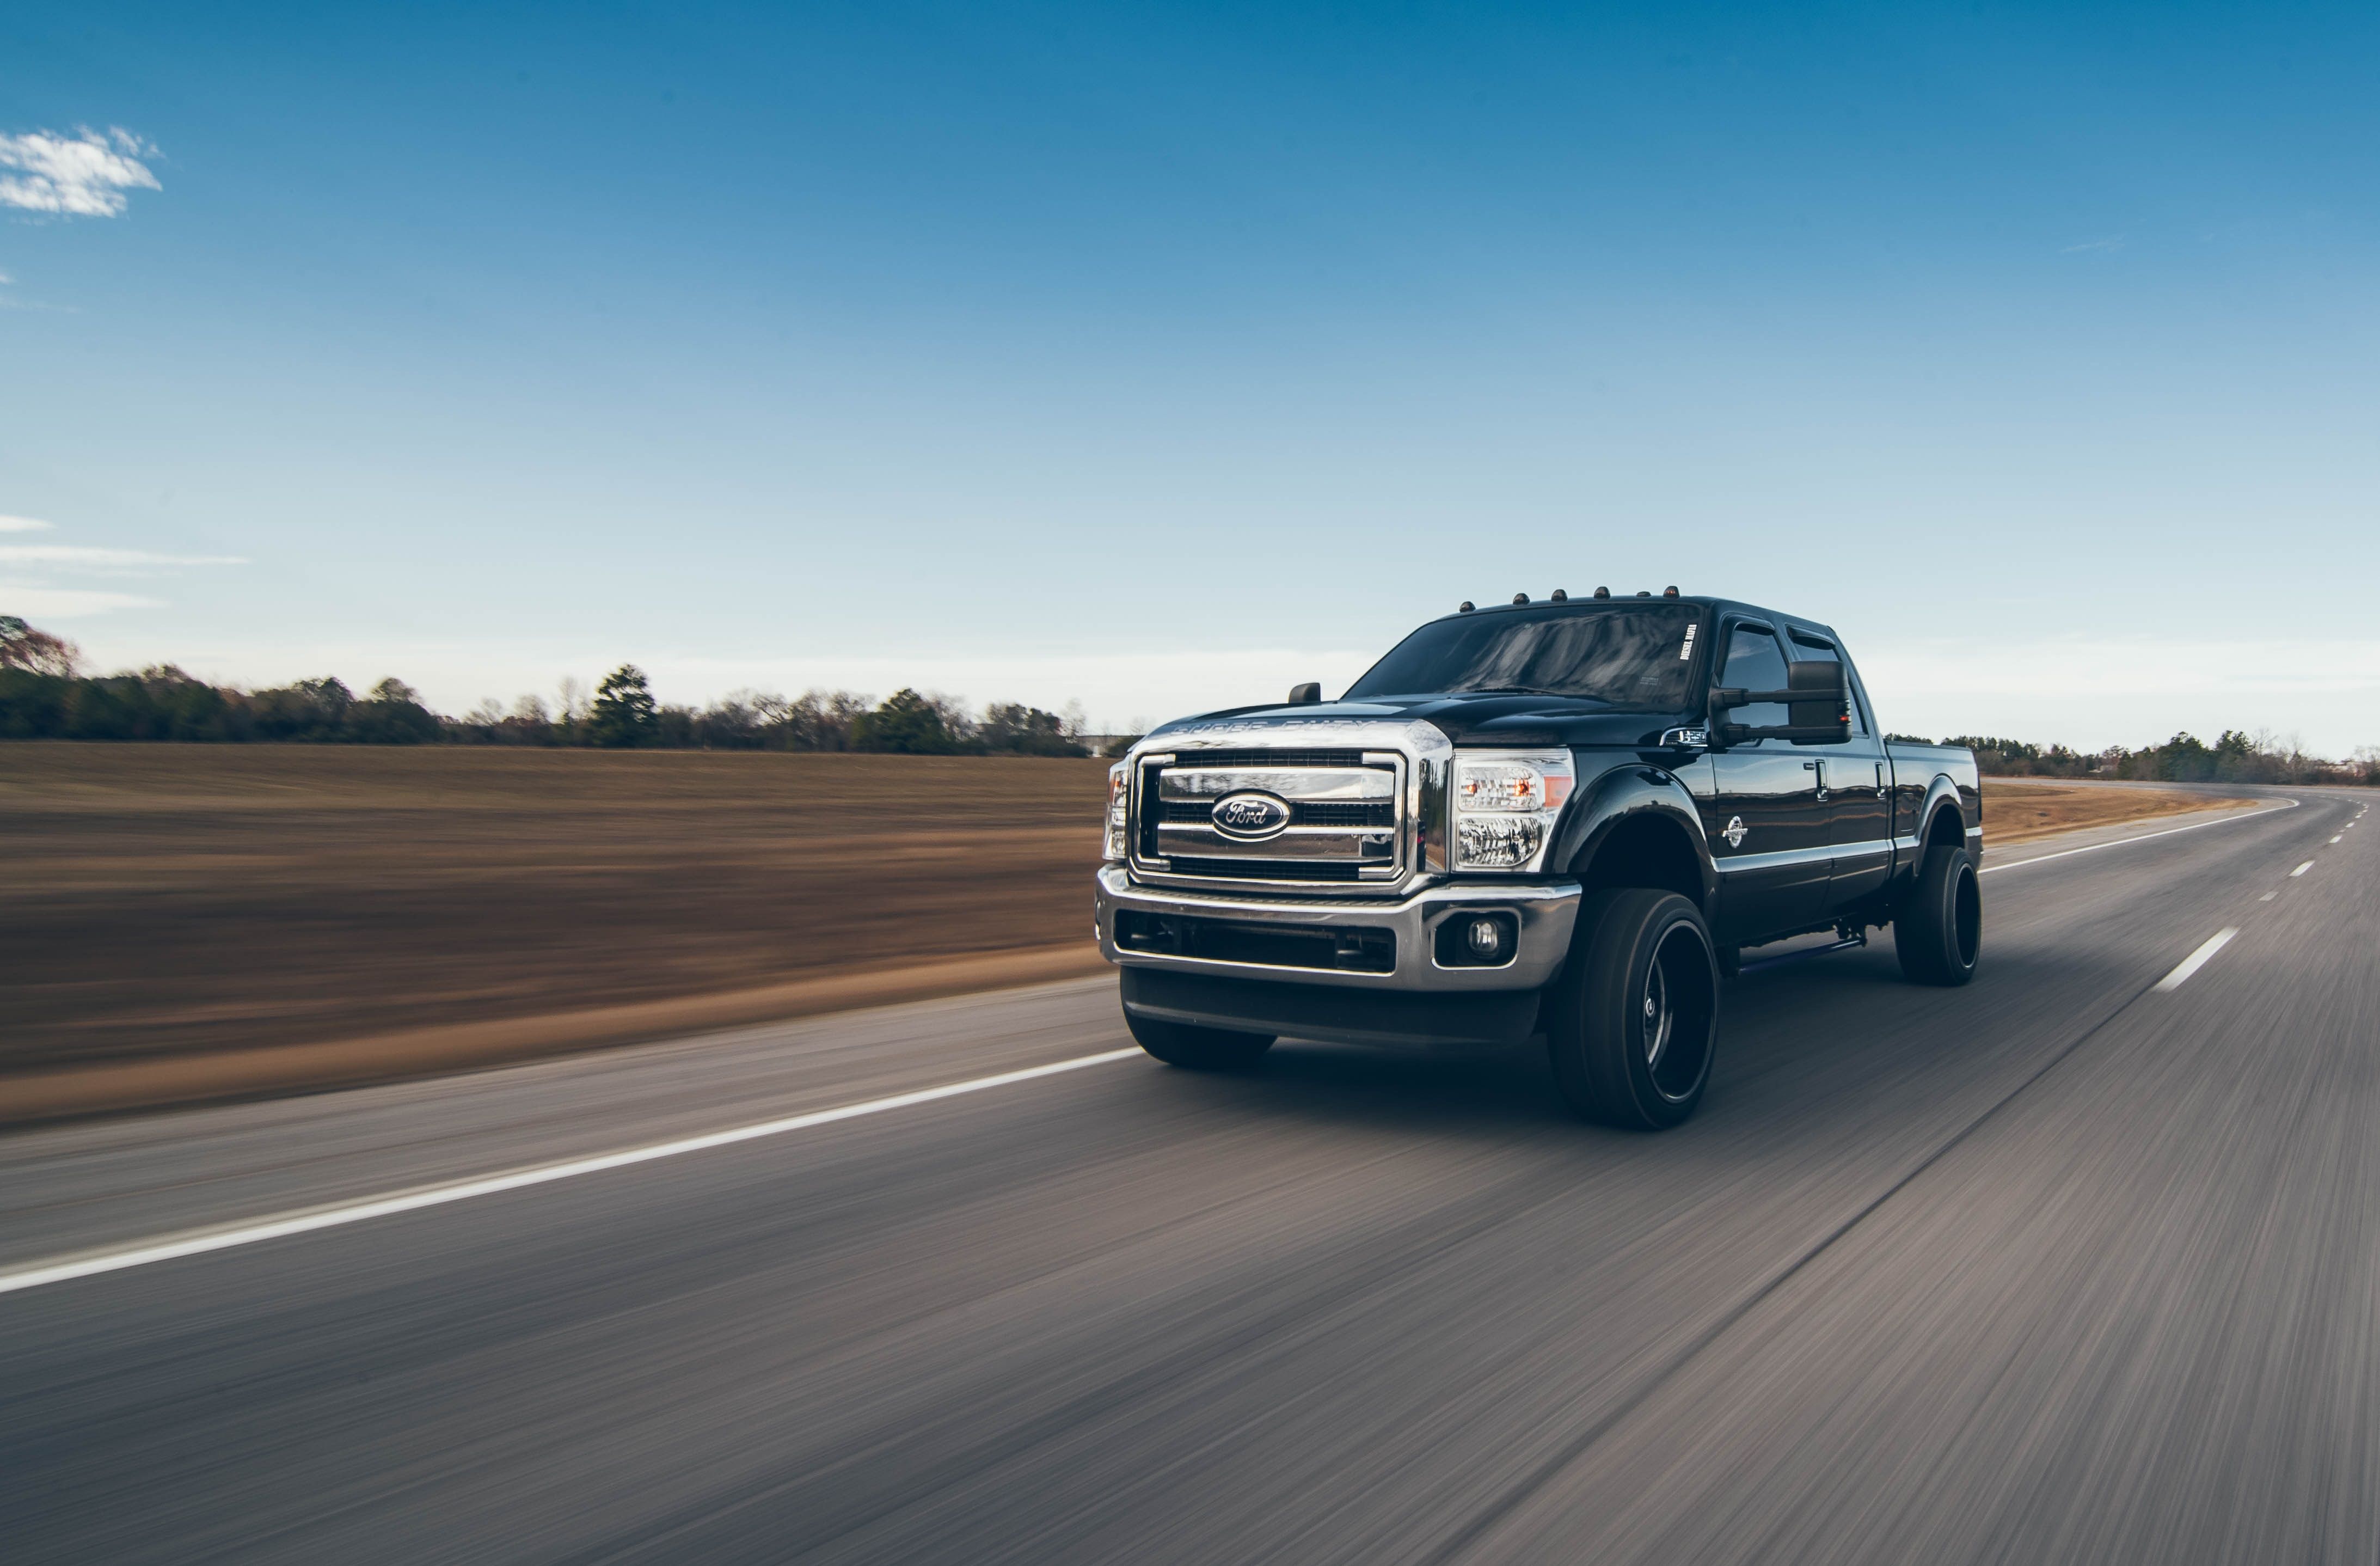 Ford bids farewell to sedans, shifting $7B investments to SUVs & trucks